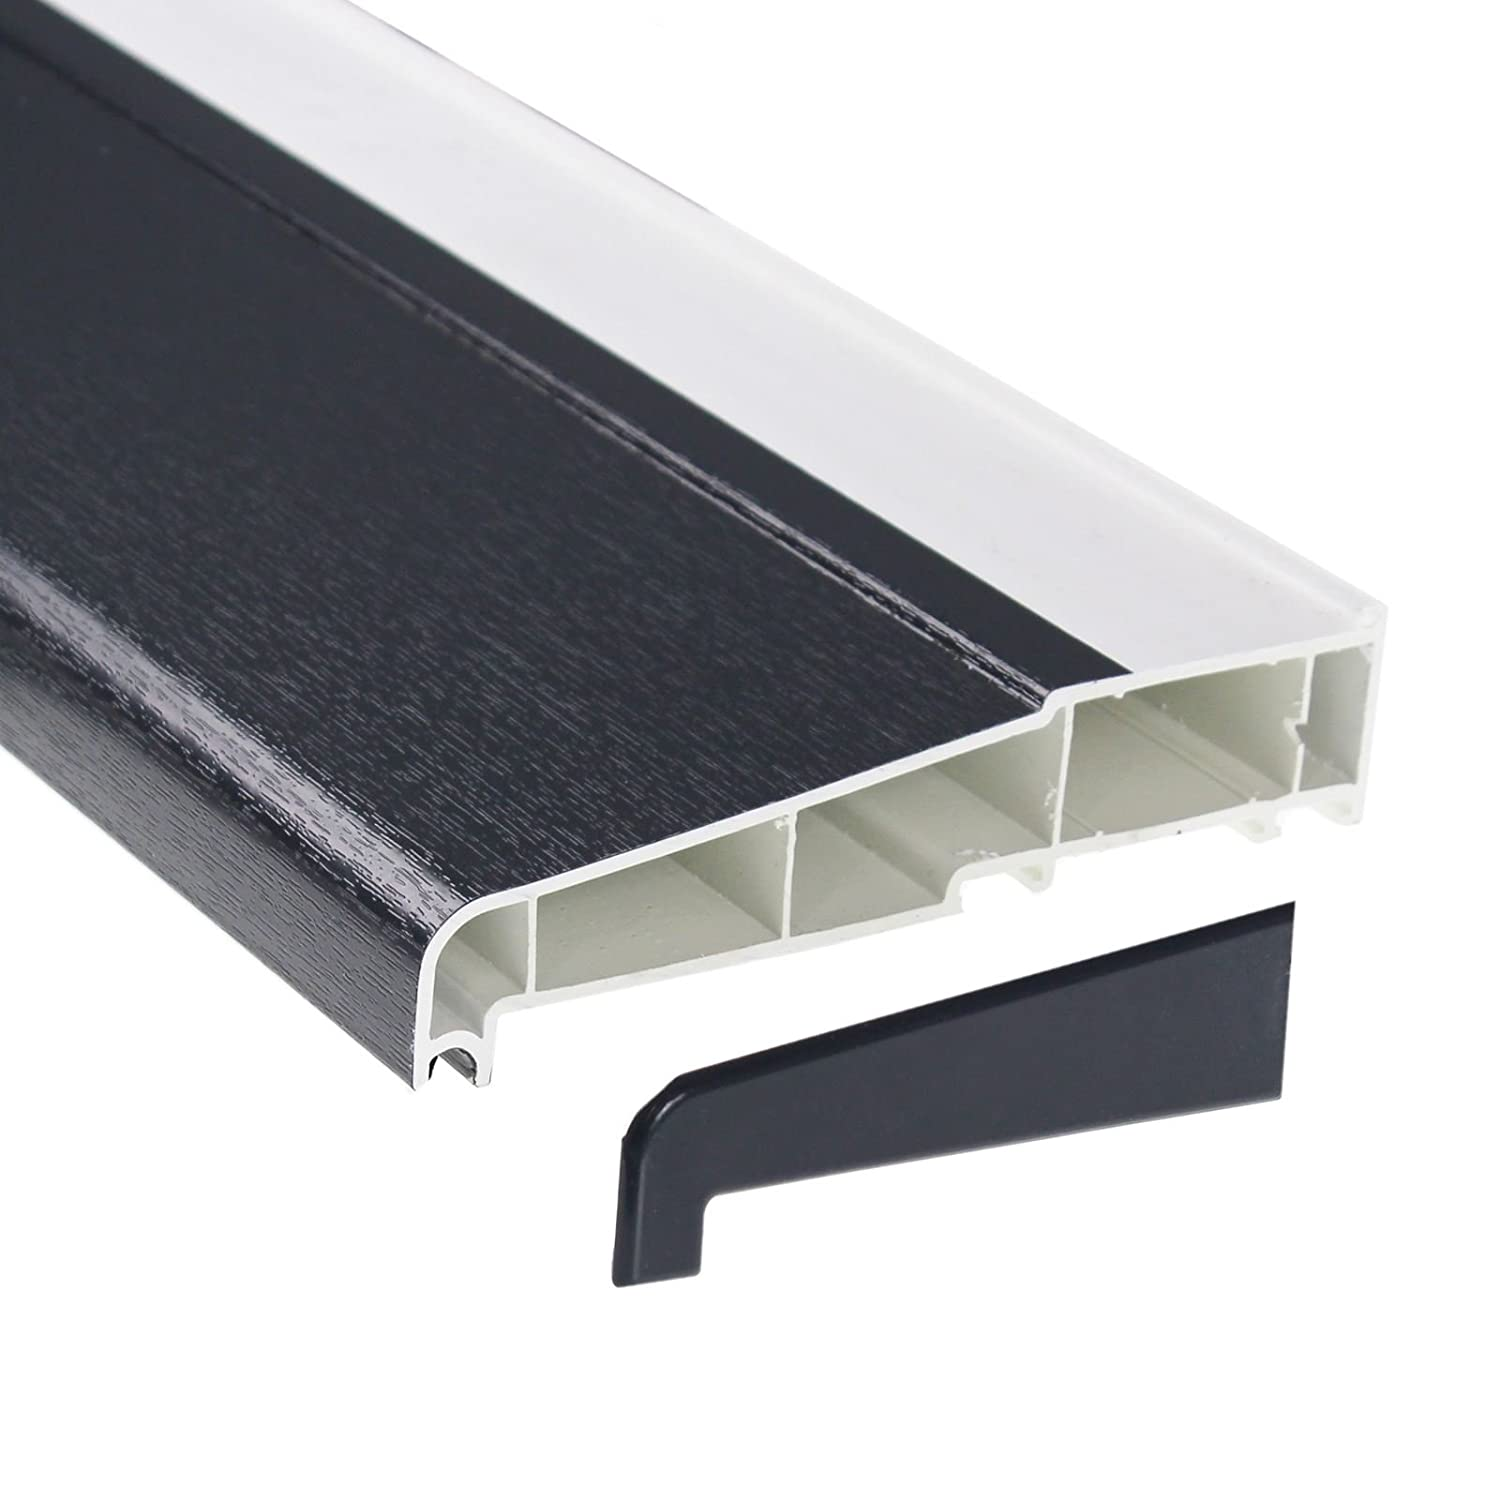 150mm x 1m Grey UPVC Plastic External Window Sill with 2 End Caps Eurocell